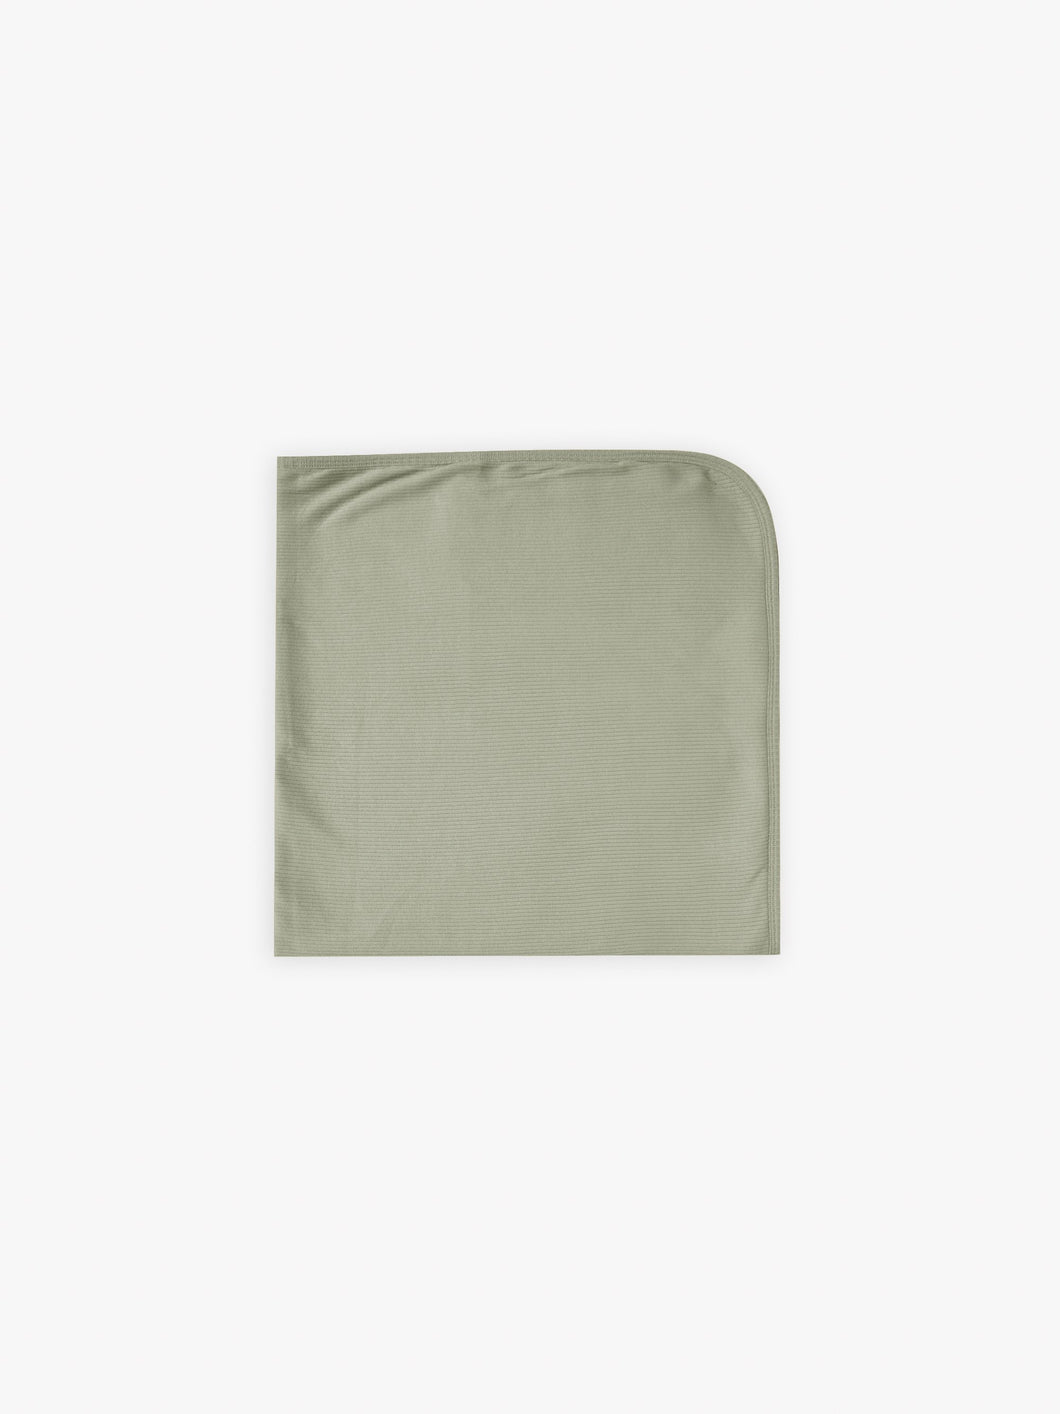 Quincy Mae Ribbed Baby Blanket - Moss